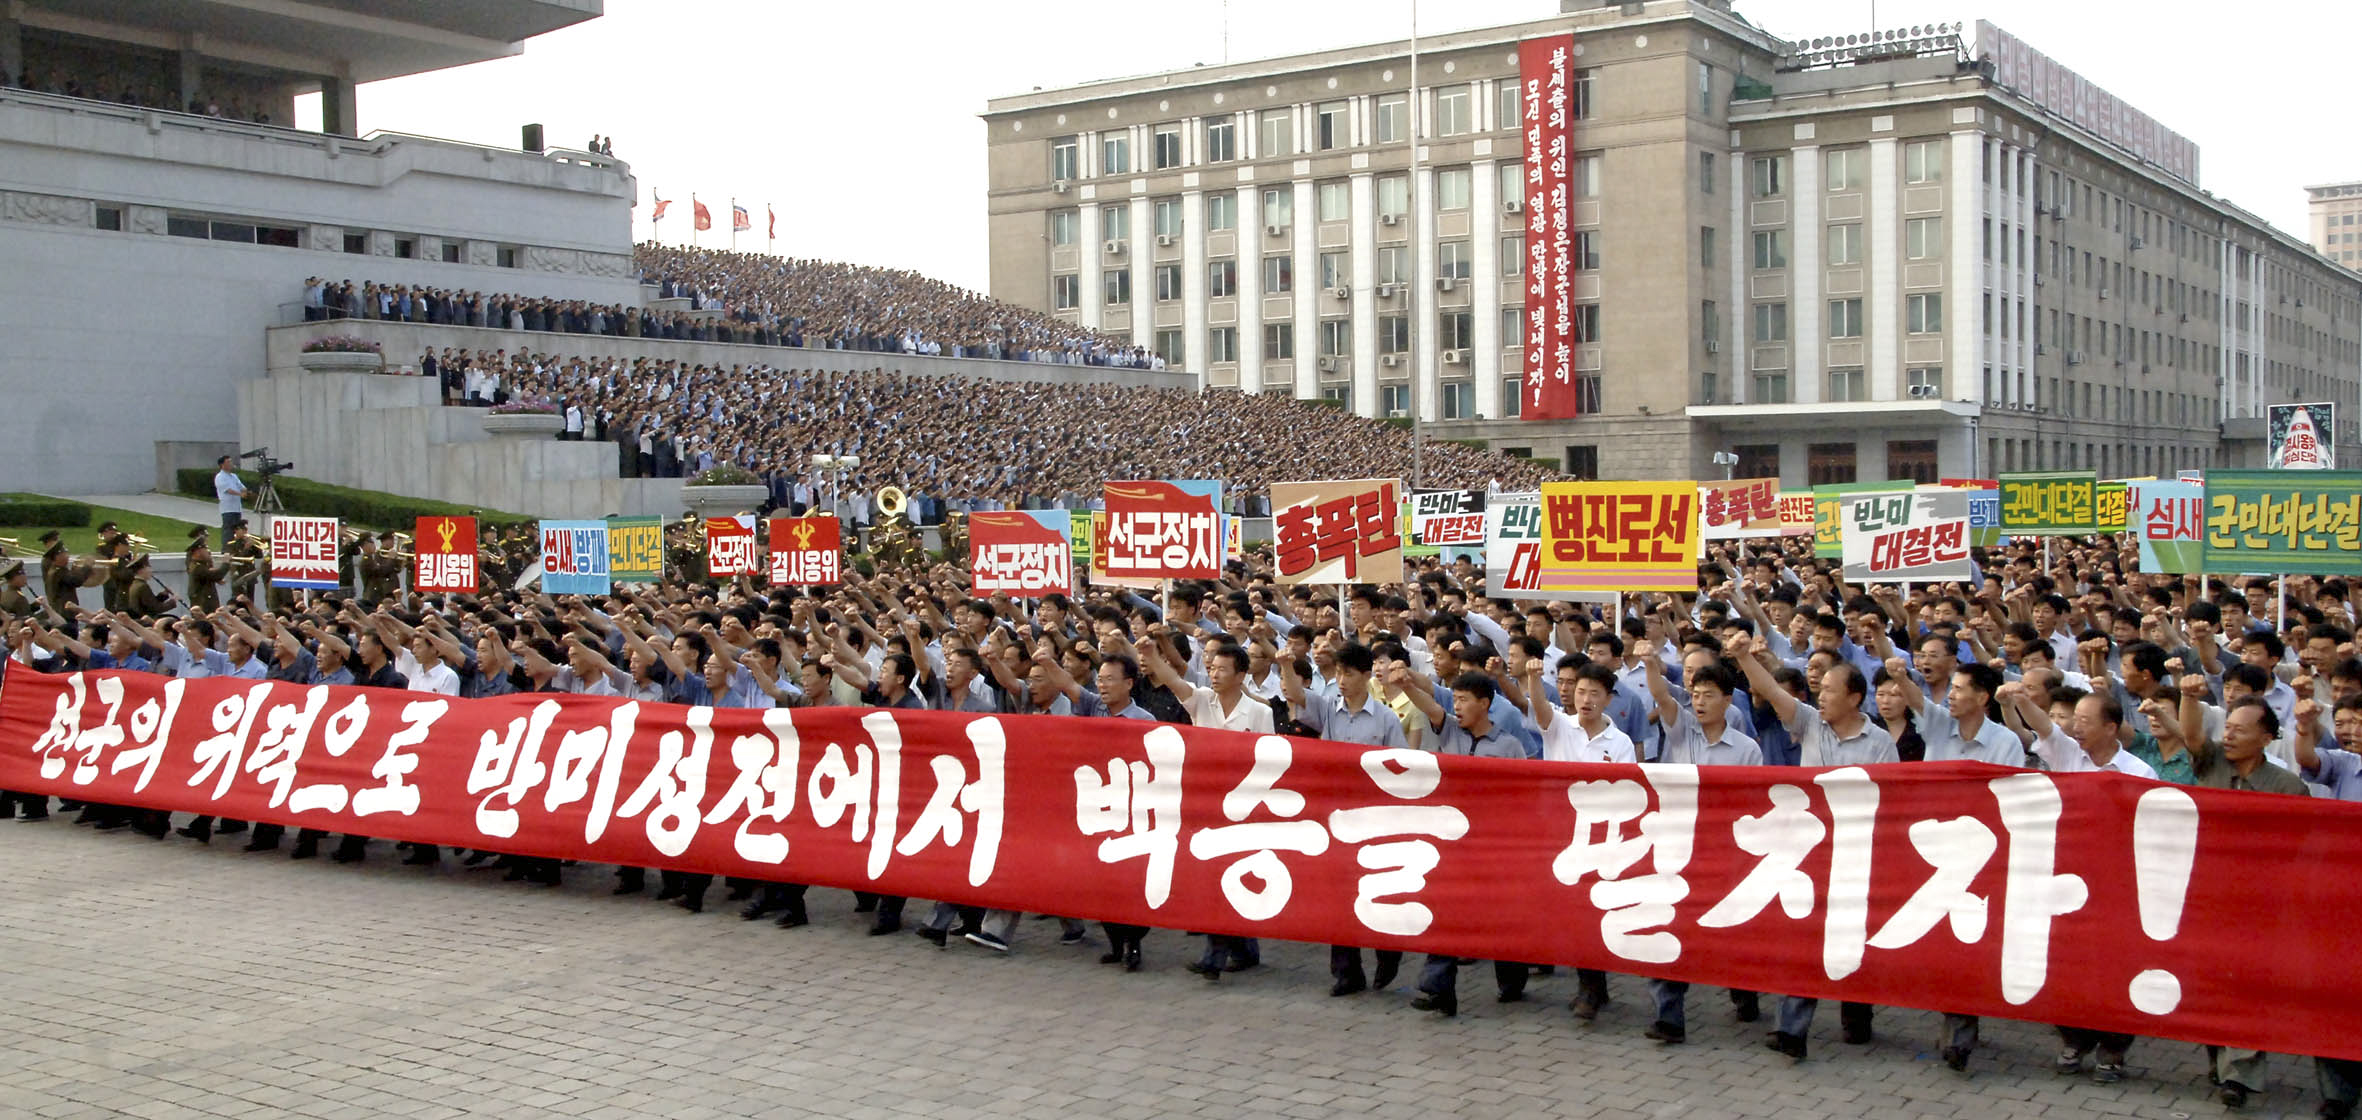 """People attend a mass rally against """"U.S. Imperialists"""" at Kim Il Sung Square in Pyongyang in this undated photo released by North Korea's Korean Central News Agency (KCNA) in Pyongyang June 25, 2014."""